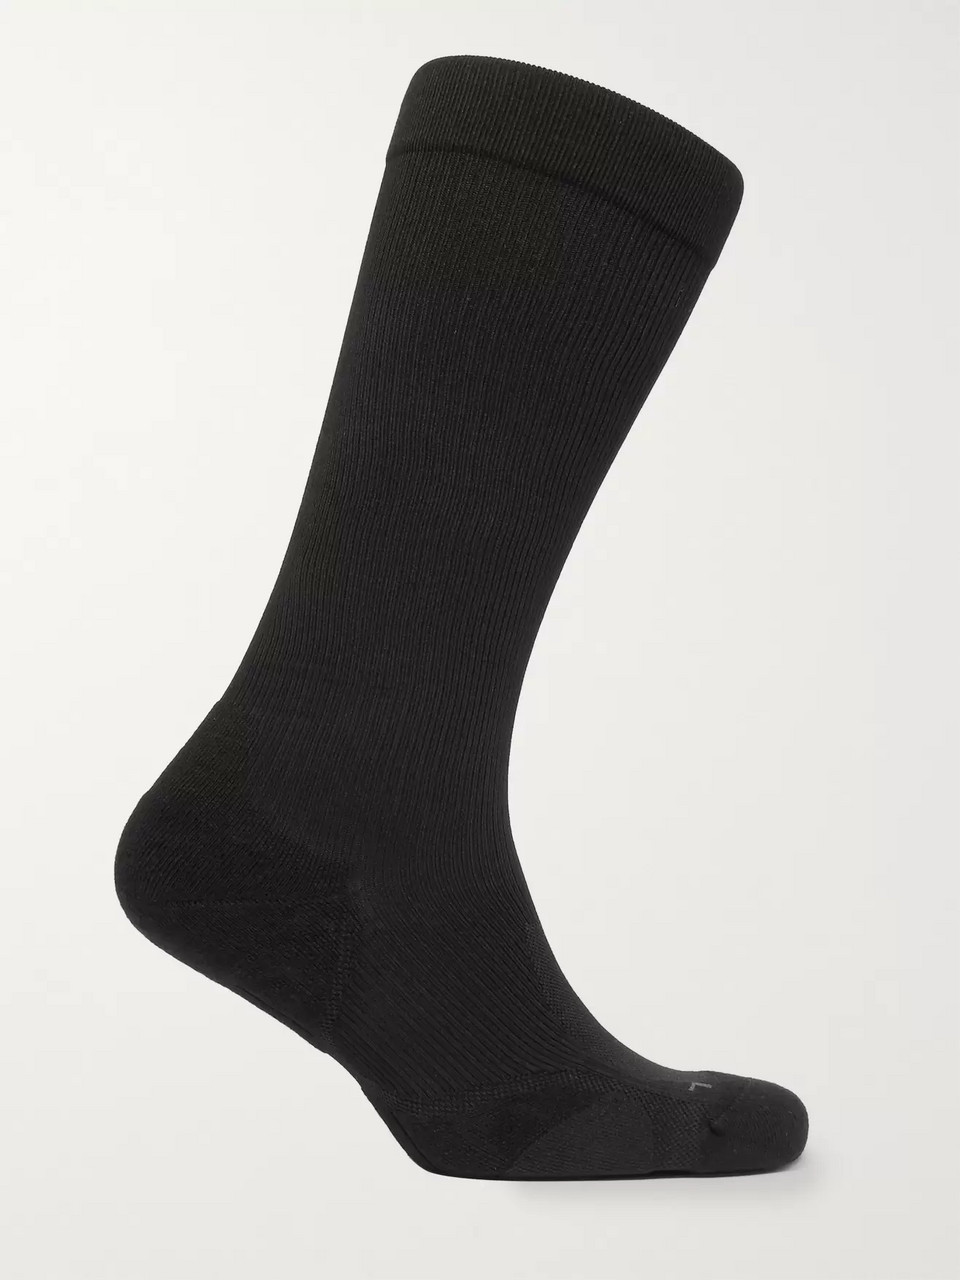 2XU Flight Stretch-Knit Compression Socks